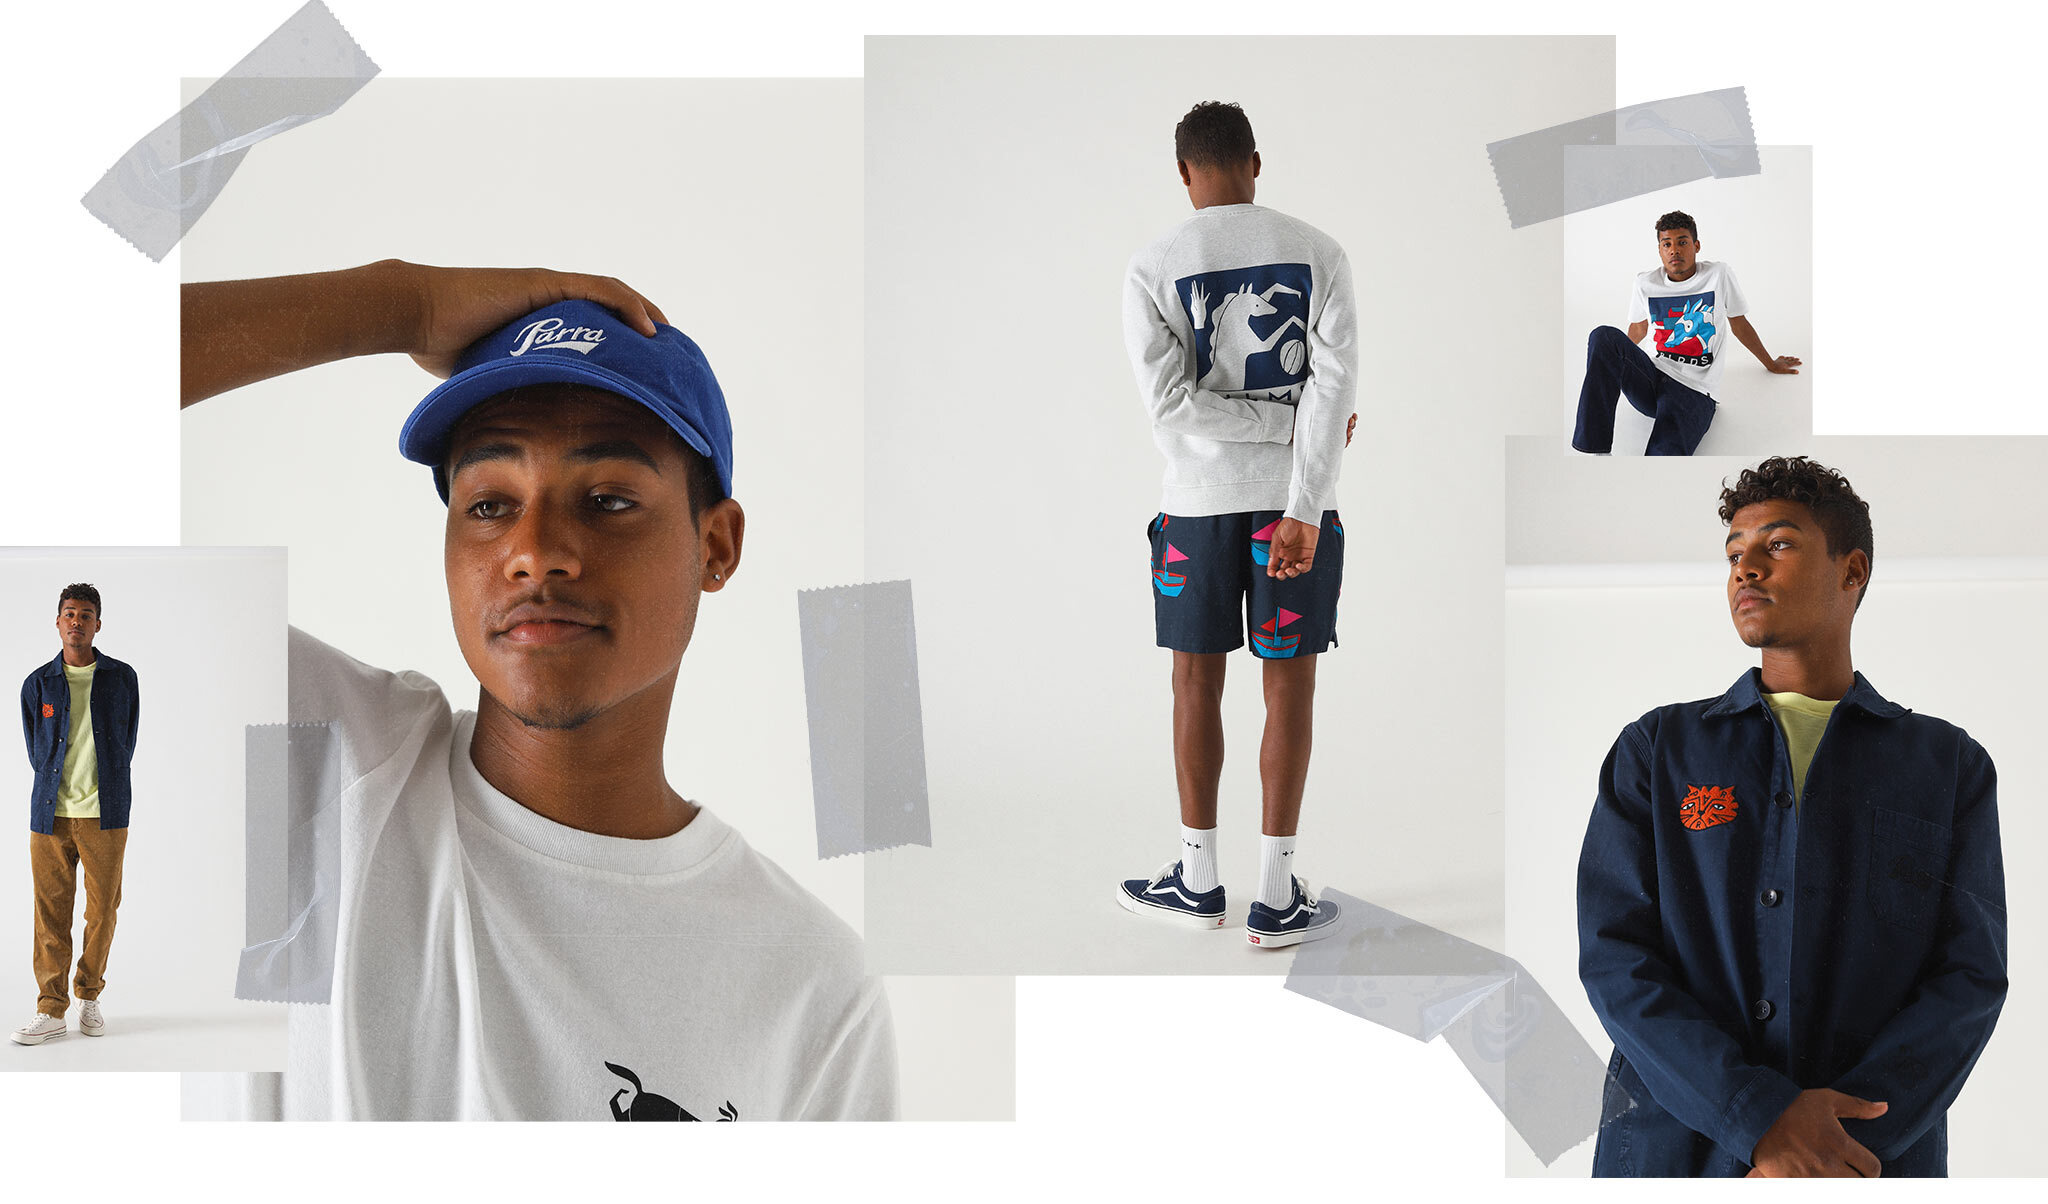 A new collection of by Parra